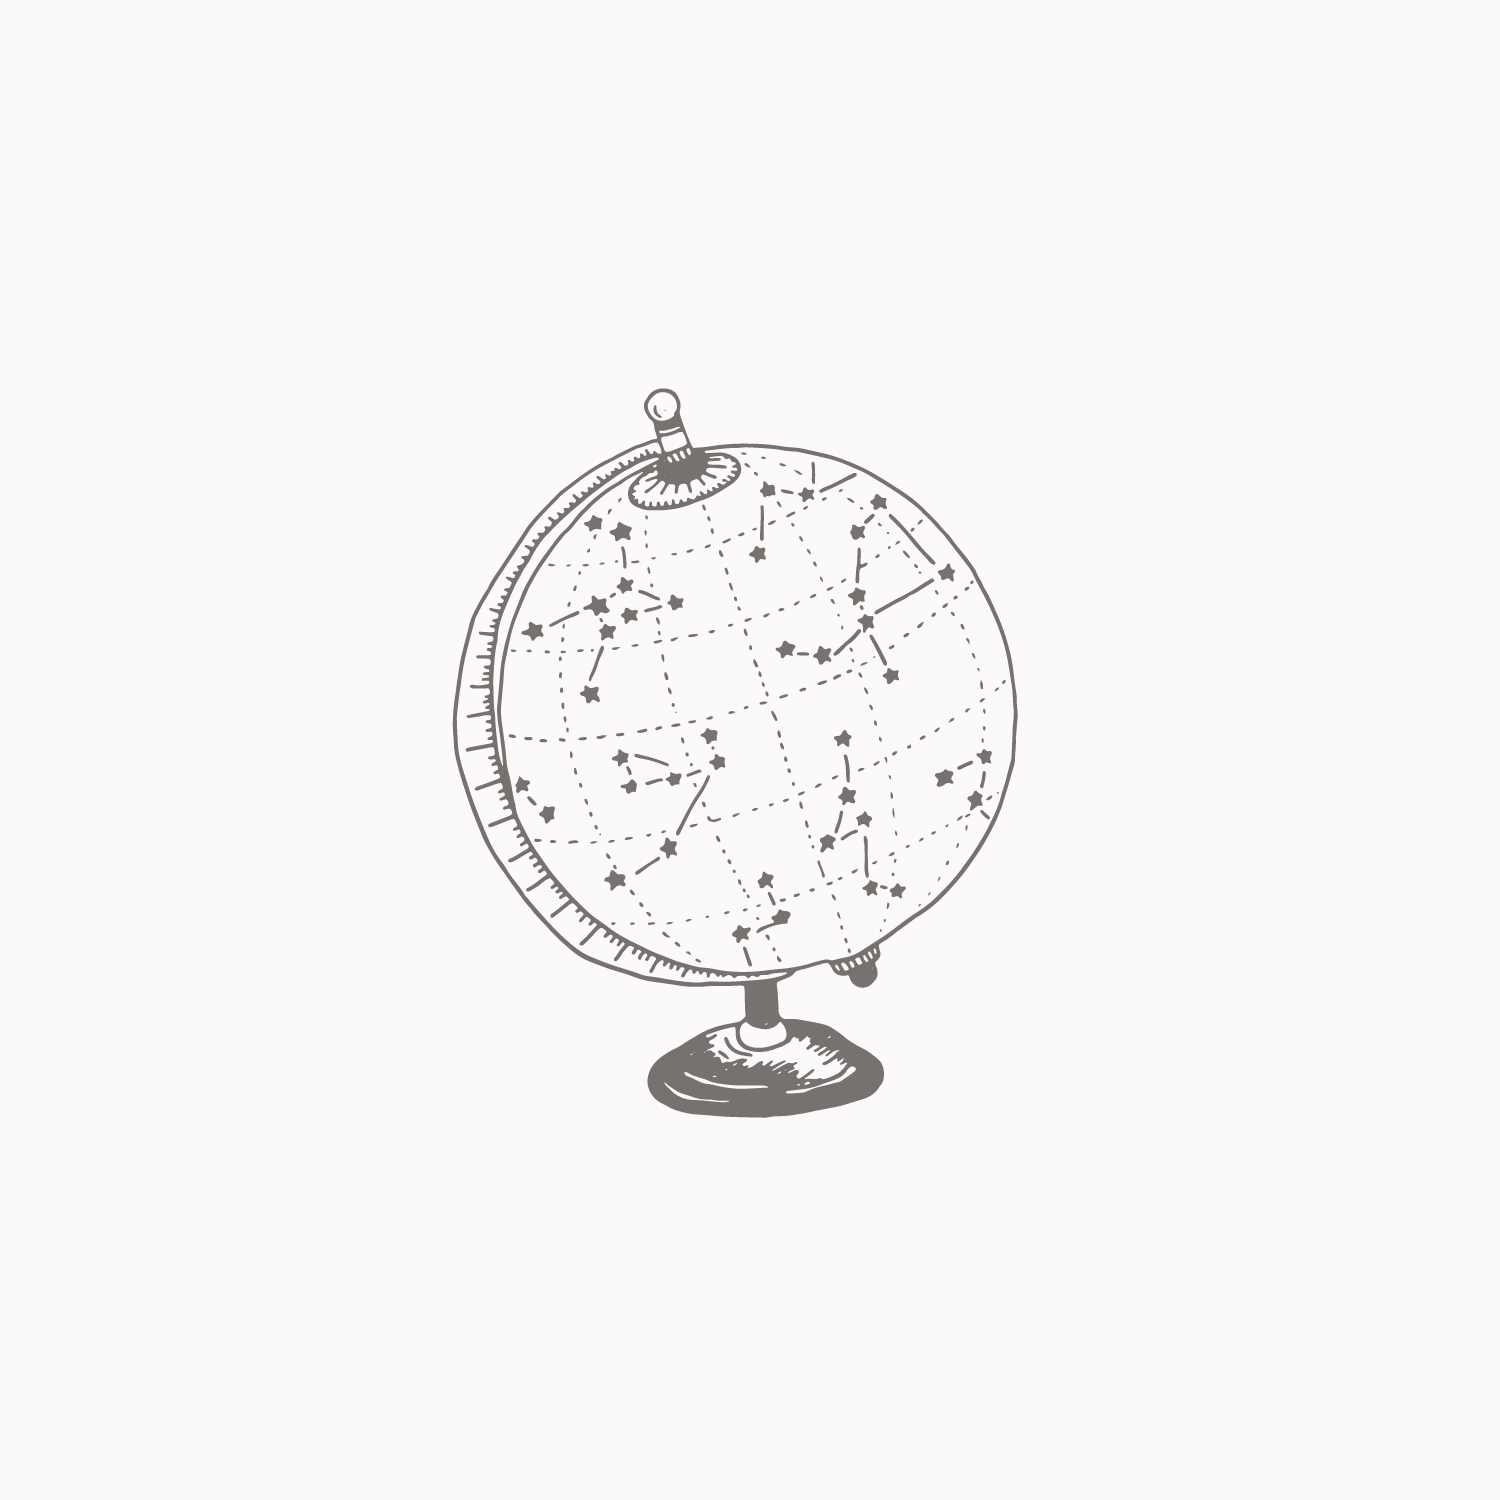 Astronomy globe illustration #the100dayproject by Bea & Bloom Creative Design Studio